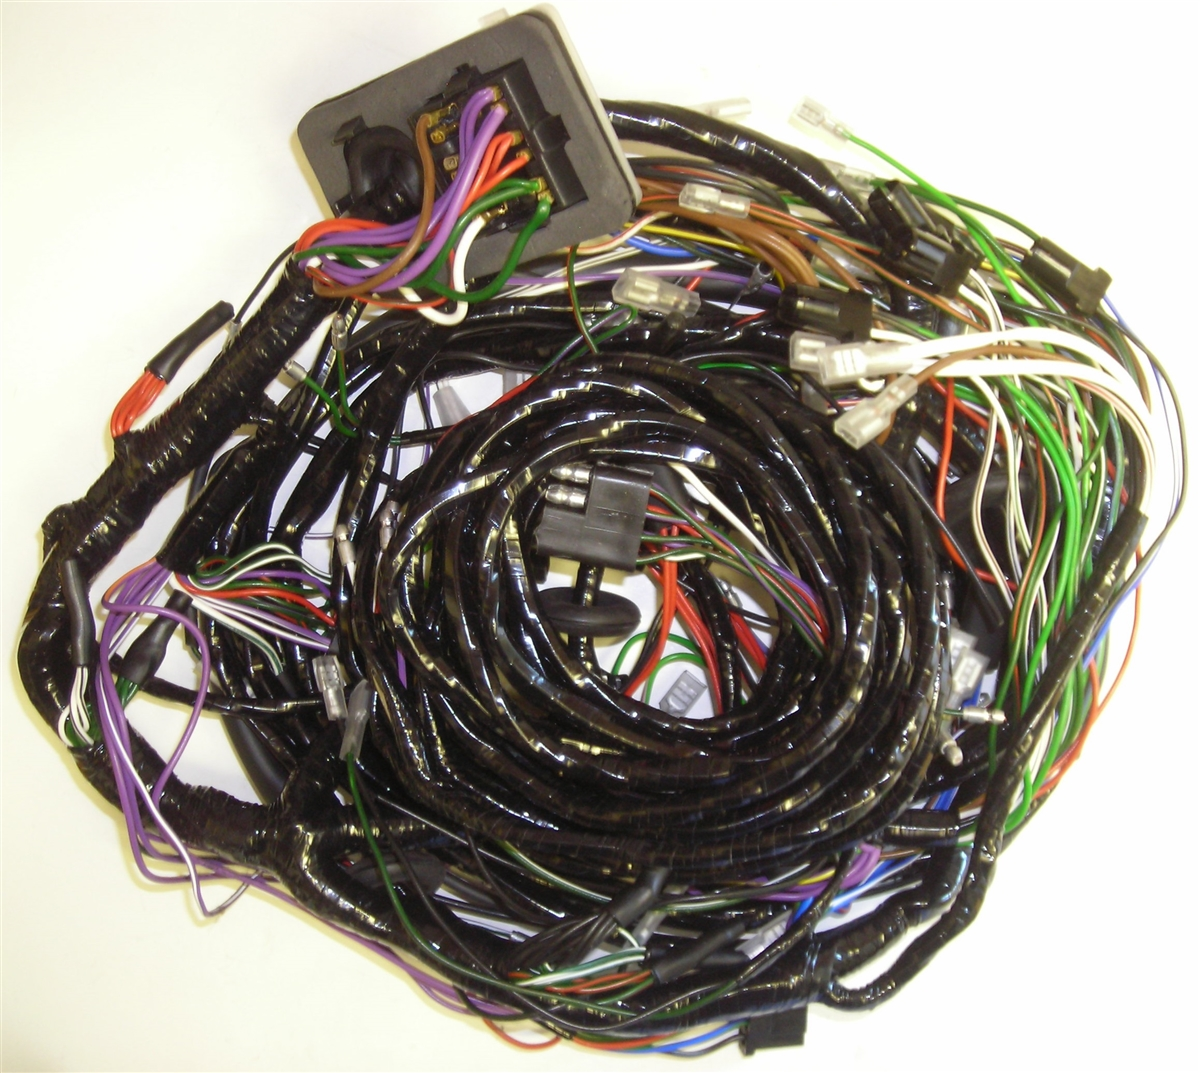 Main Wiring Harness Triumph GT6+ Mk 2 up to KC 83,298 (1814) on